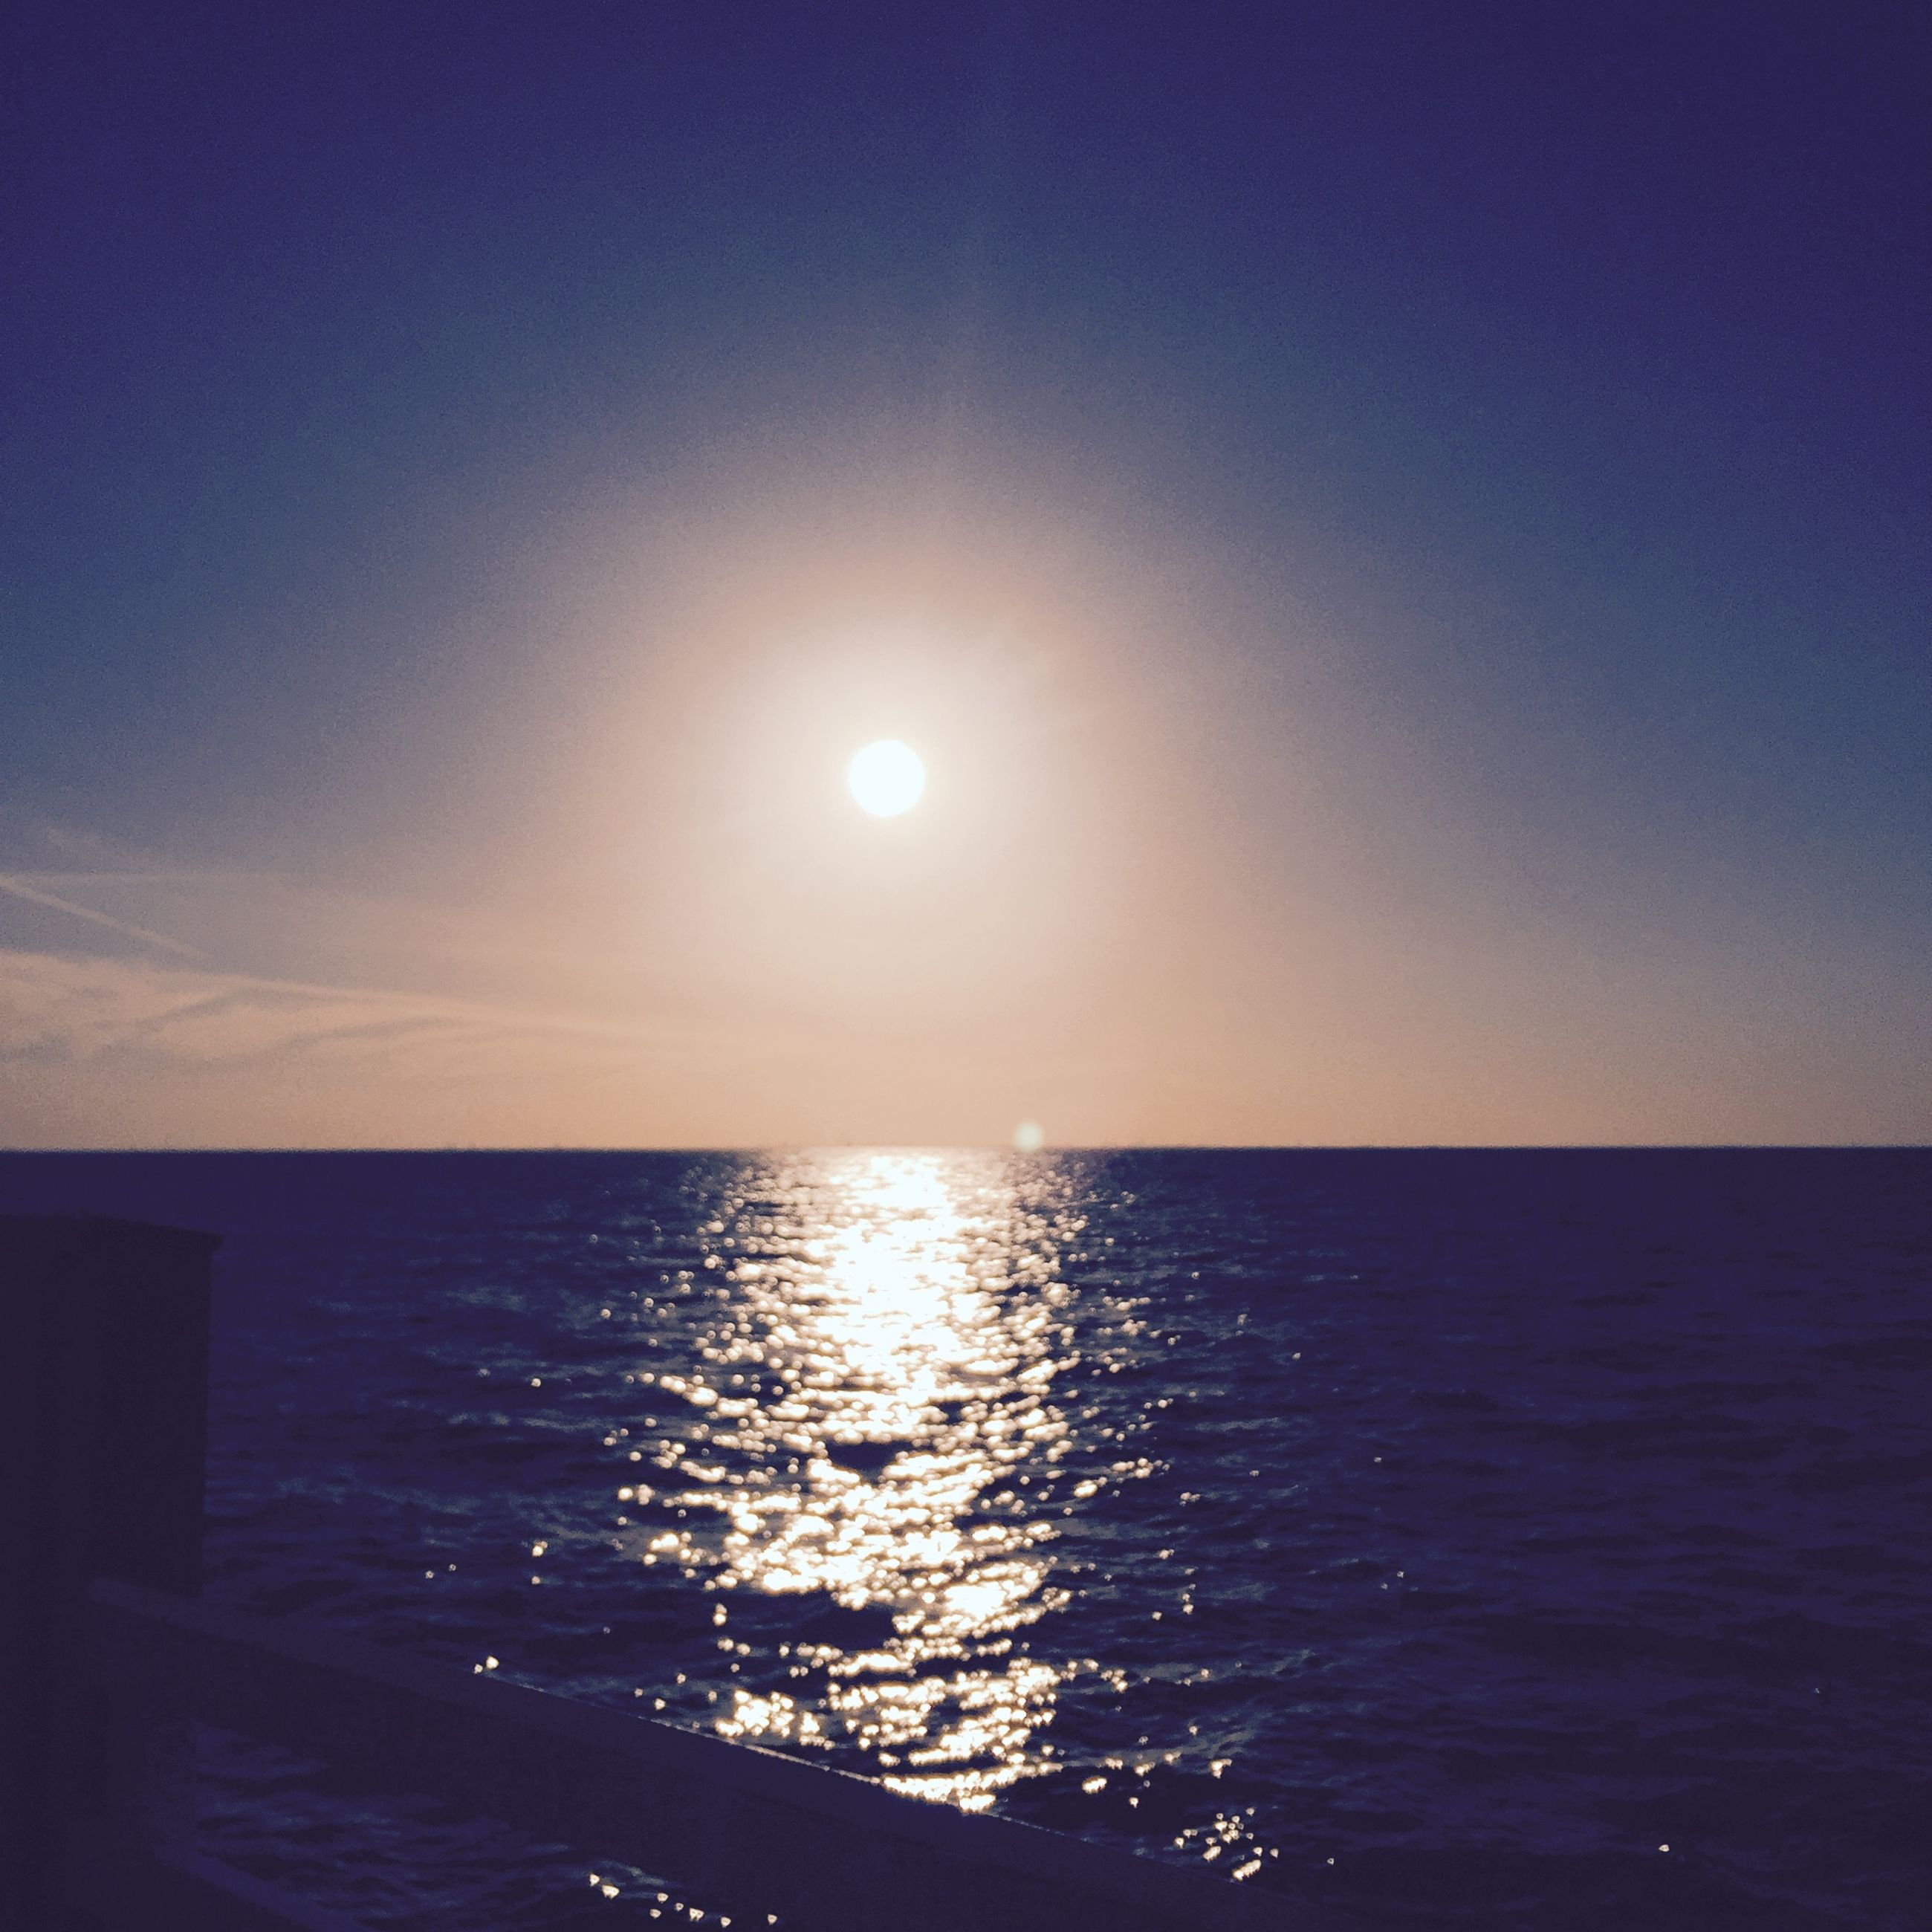 water, sea, sun, horizon over water, tranquil scene, scenics, tranquility, beauty in nature, reflection, sunset, idyllic, nature, sky, waterfront, sunlight, clear sky, rippled, copy space, silhouette, blue